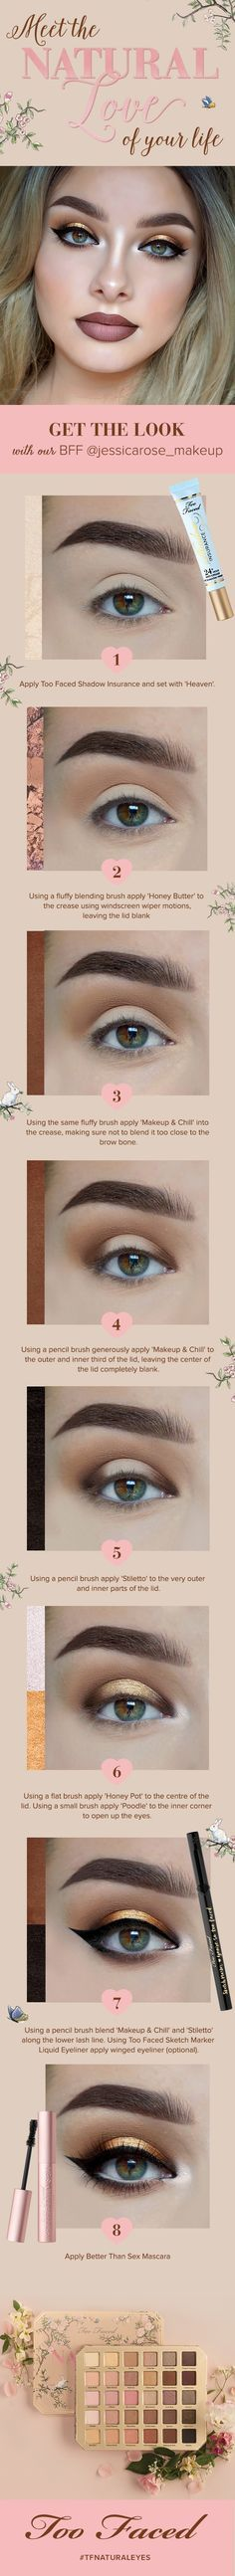 A blockbuster combination of stunning shades from Too Faced bestsellers Natural Eyes, Natural Matte, Natural At Night, and of course, never-before-seen neutrals.